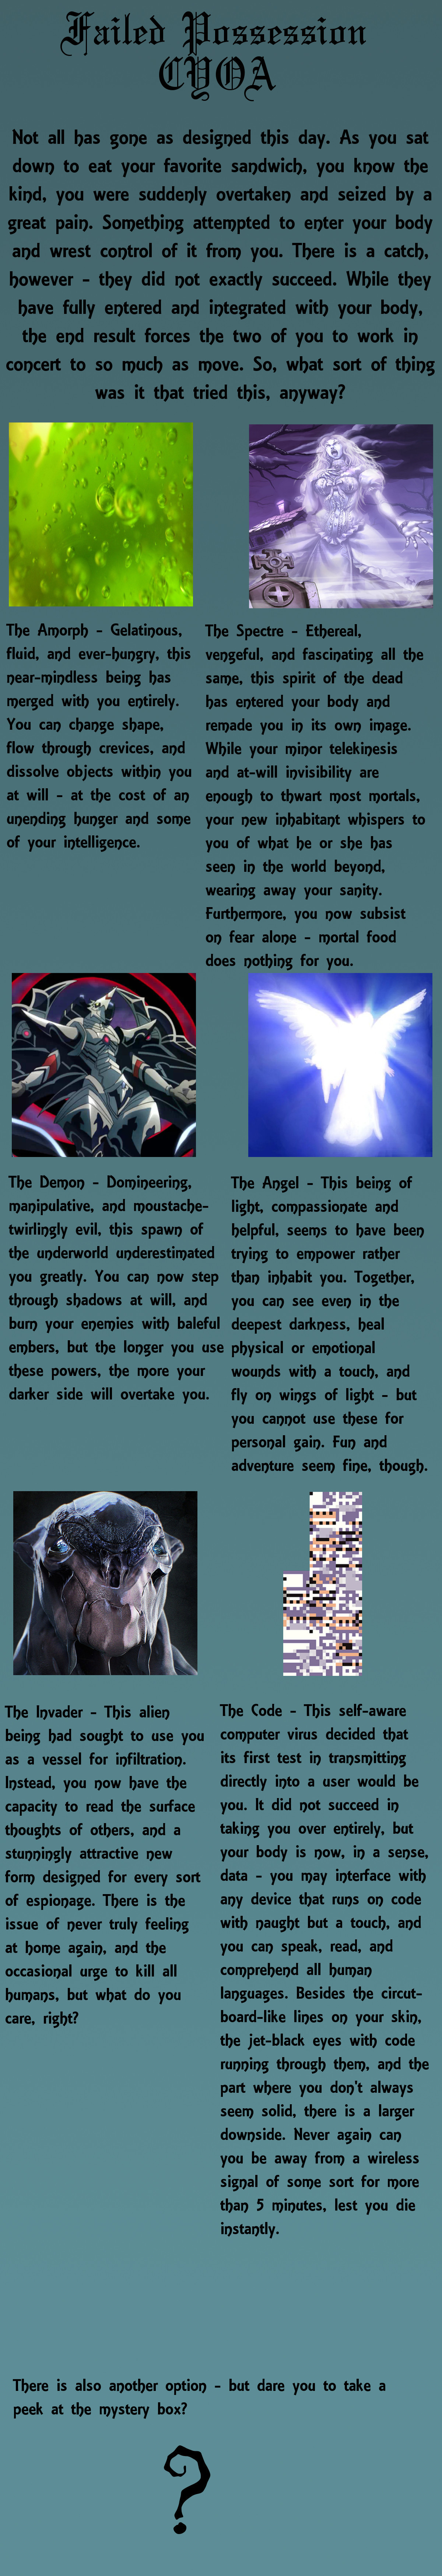 Failed Posseession CYOA. .. Angel's fine enough for me. The whole personal gain not allowed seems a little iffy, though. If I'm out adventuring in the woods or whatever since I can fly now